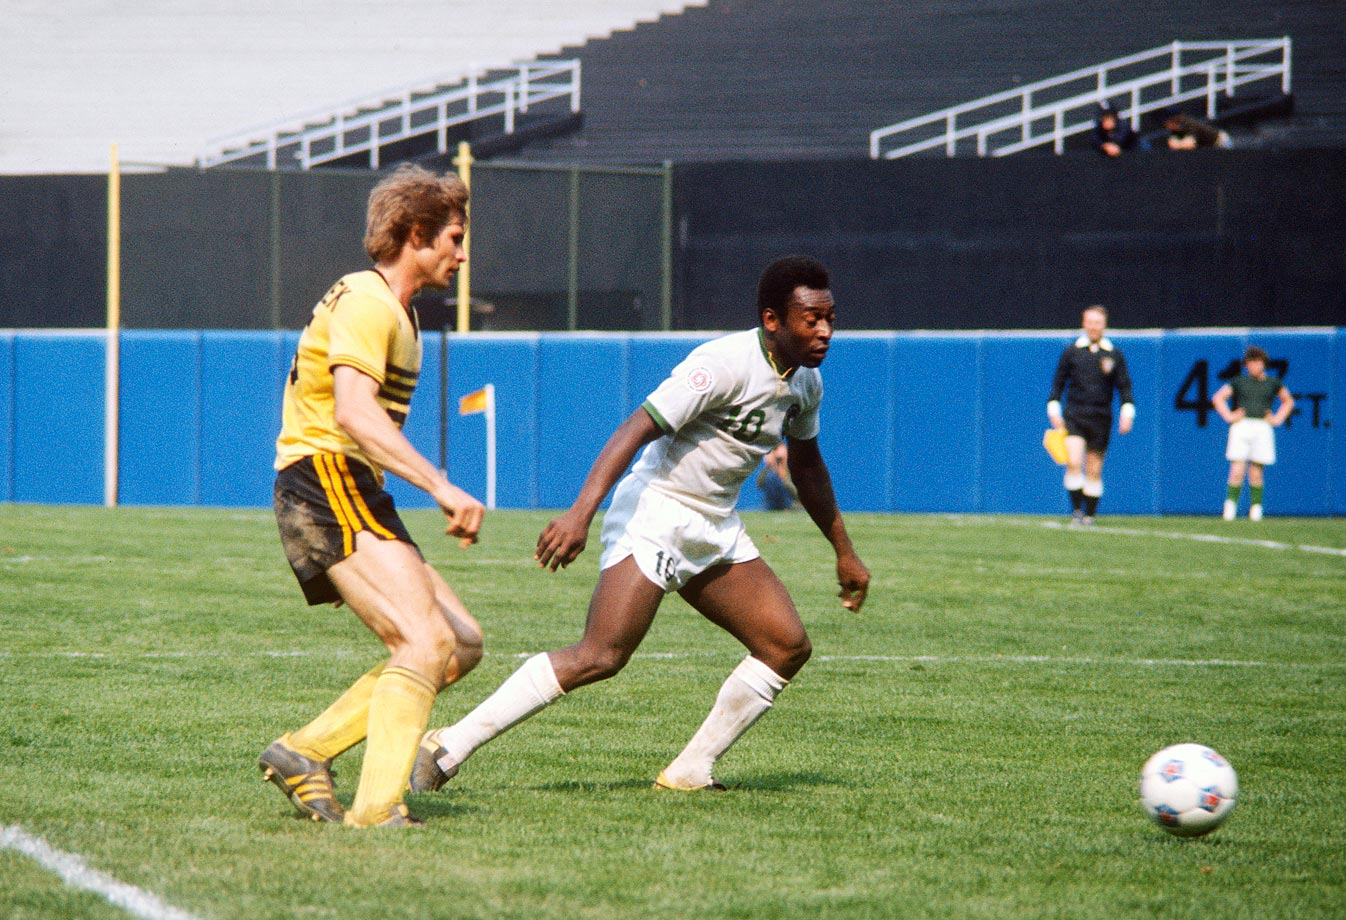 Pele, while playing with the Cosmos in the 1970's, played in Yankee Stadium.